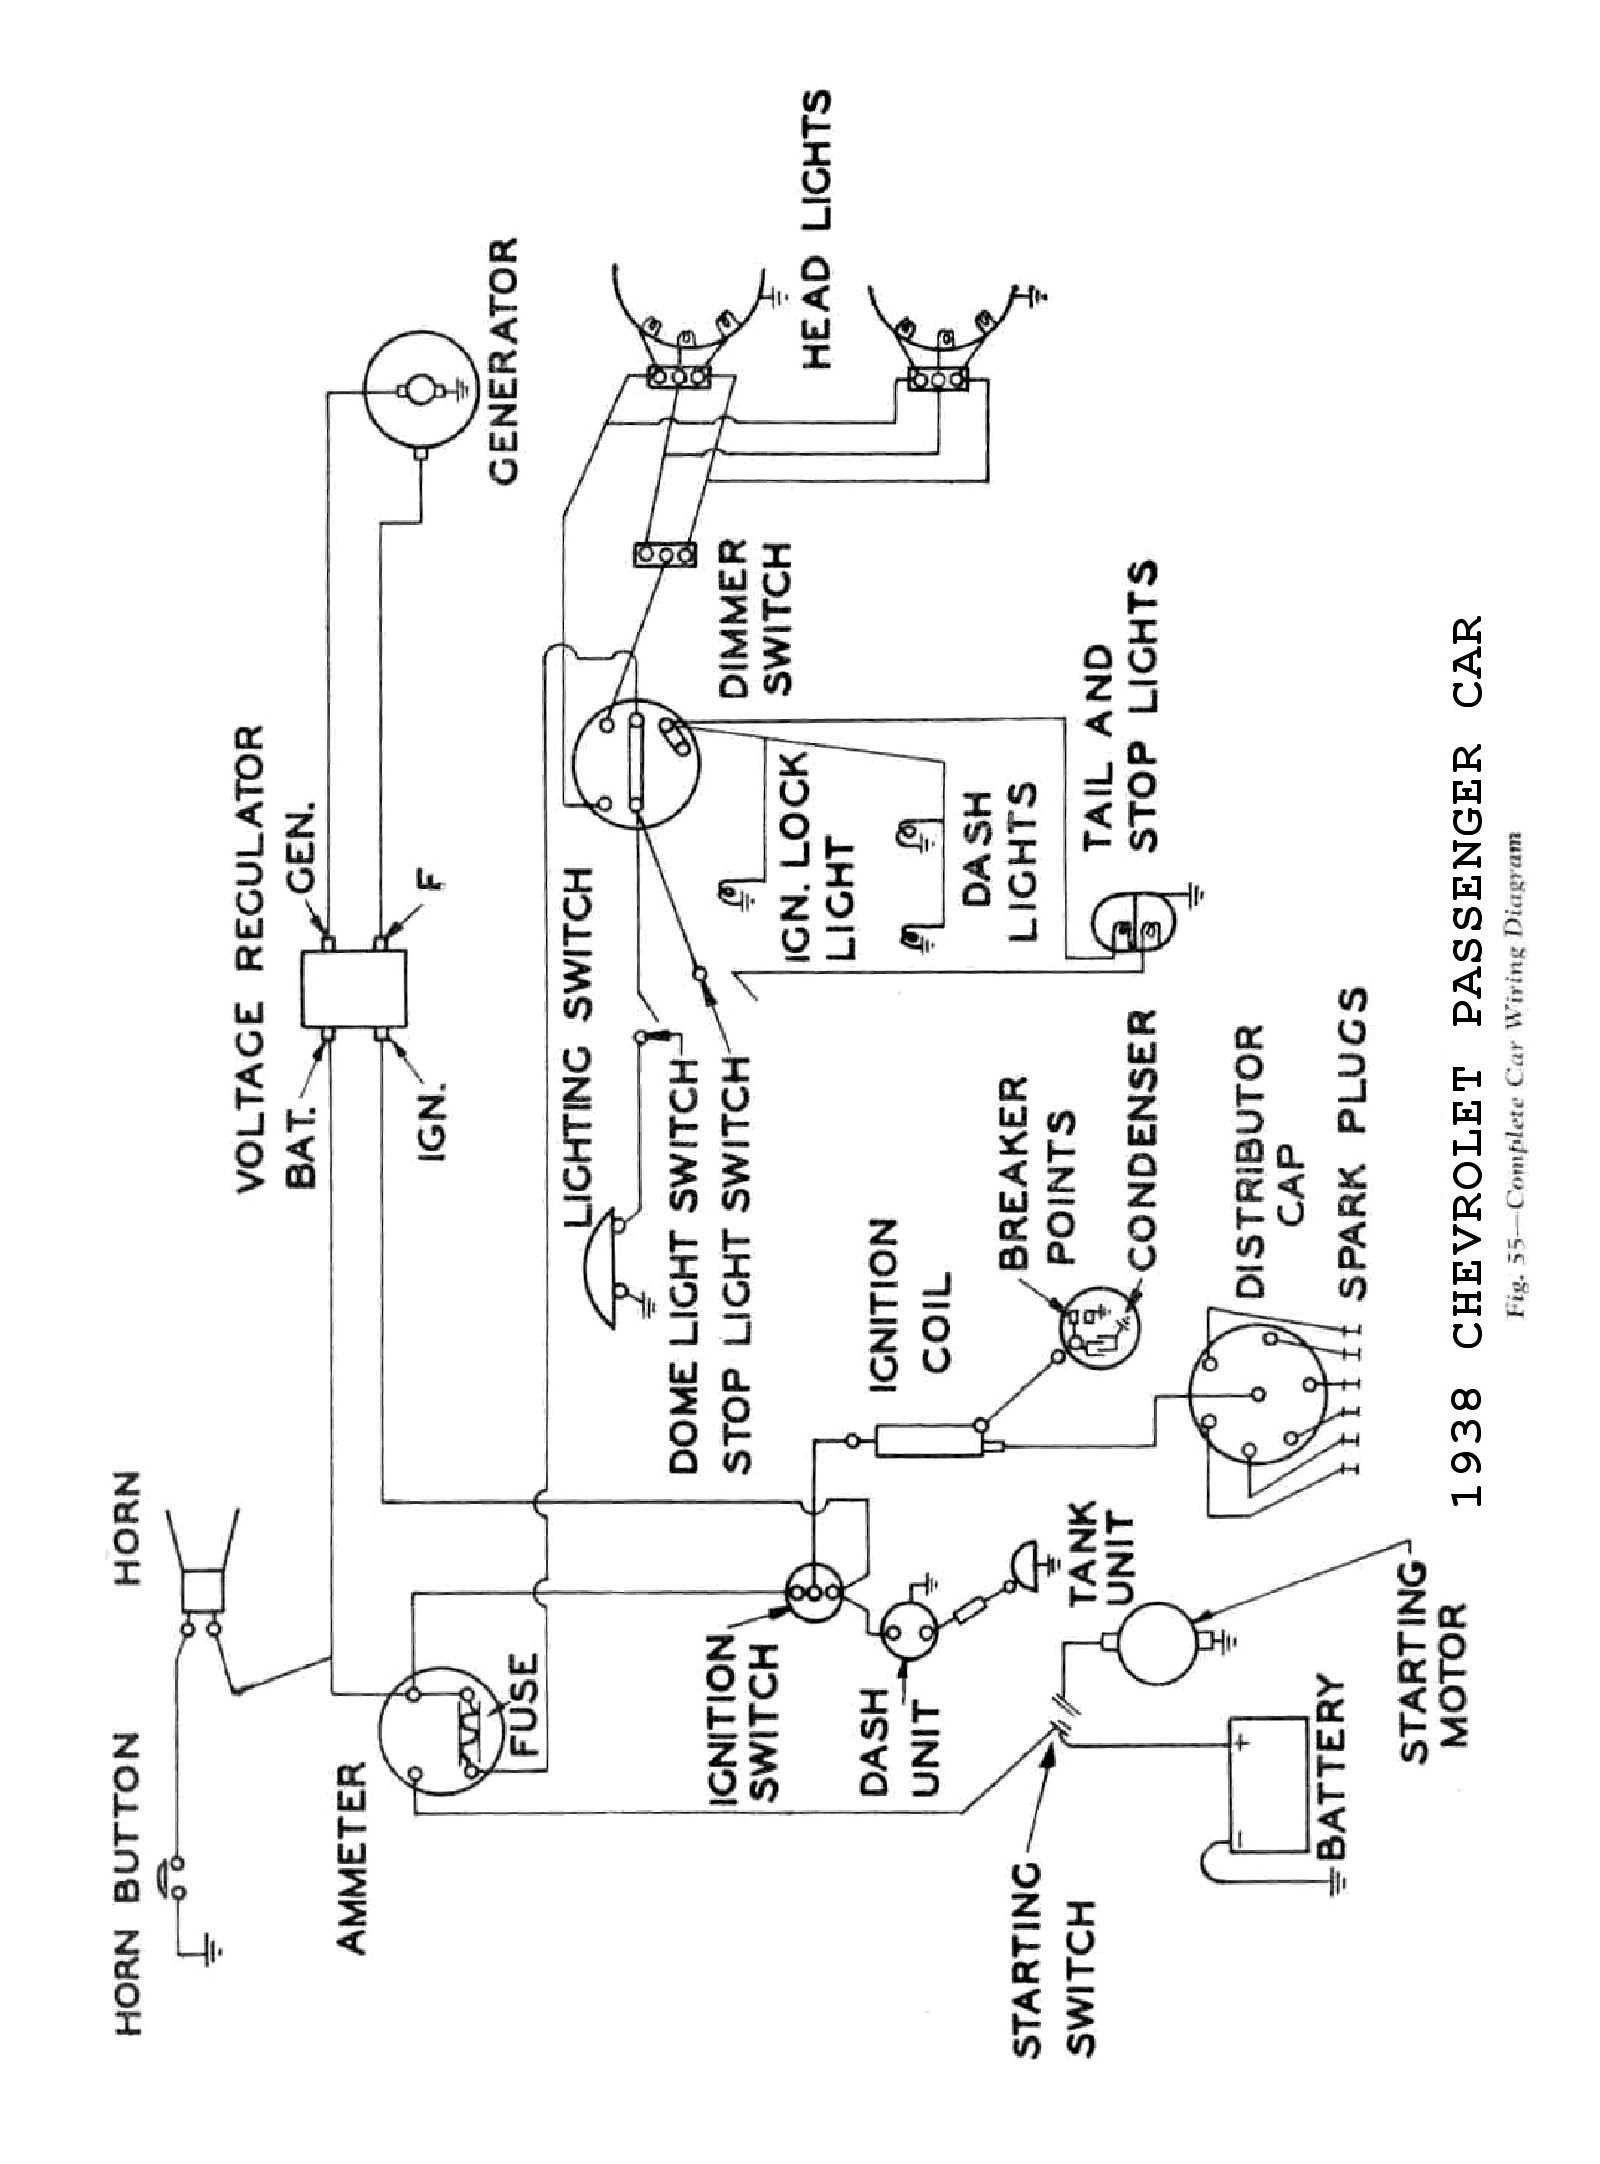 hight resolution of ignition circuit diagram for the 1946 55 plymouth all models charging circuit diagram for the 1946